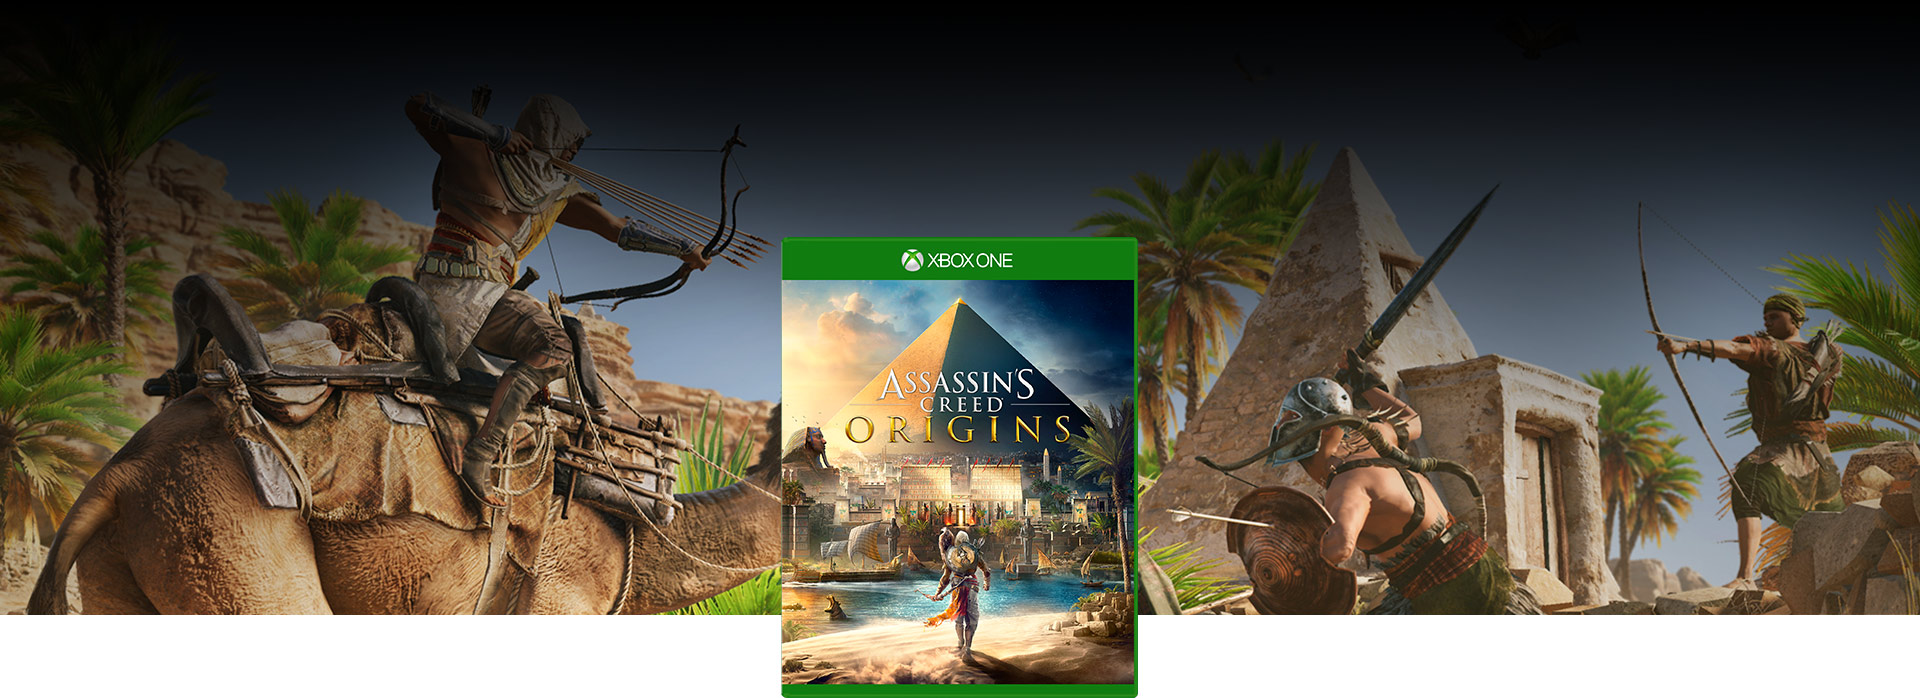 Imagem da caixa do Assassin's Creed® Origins